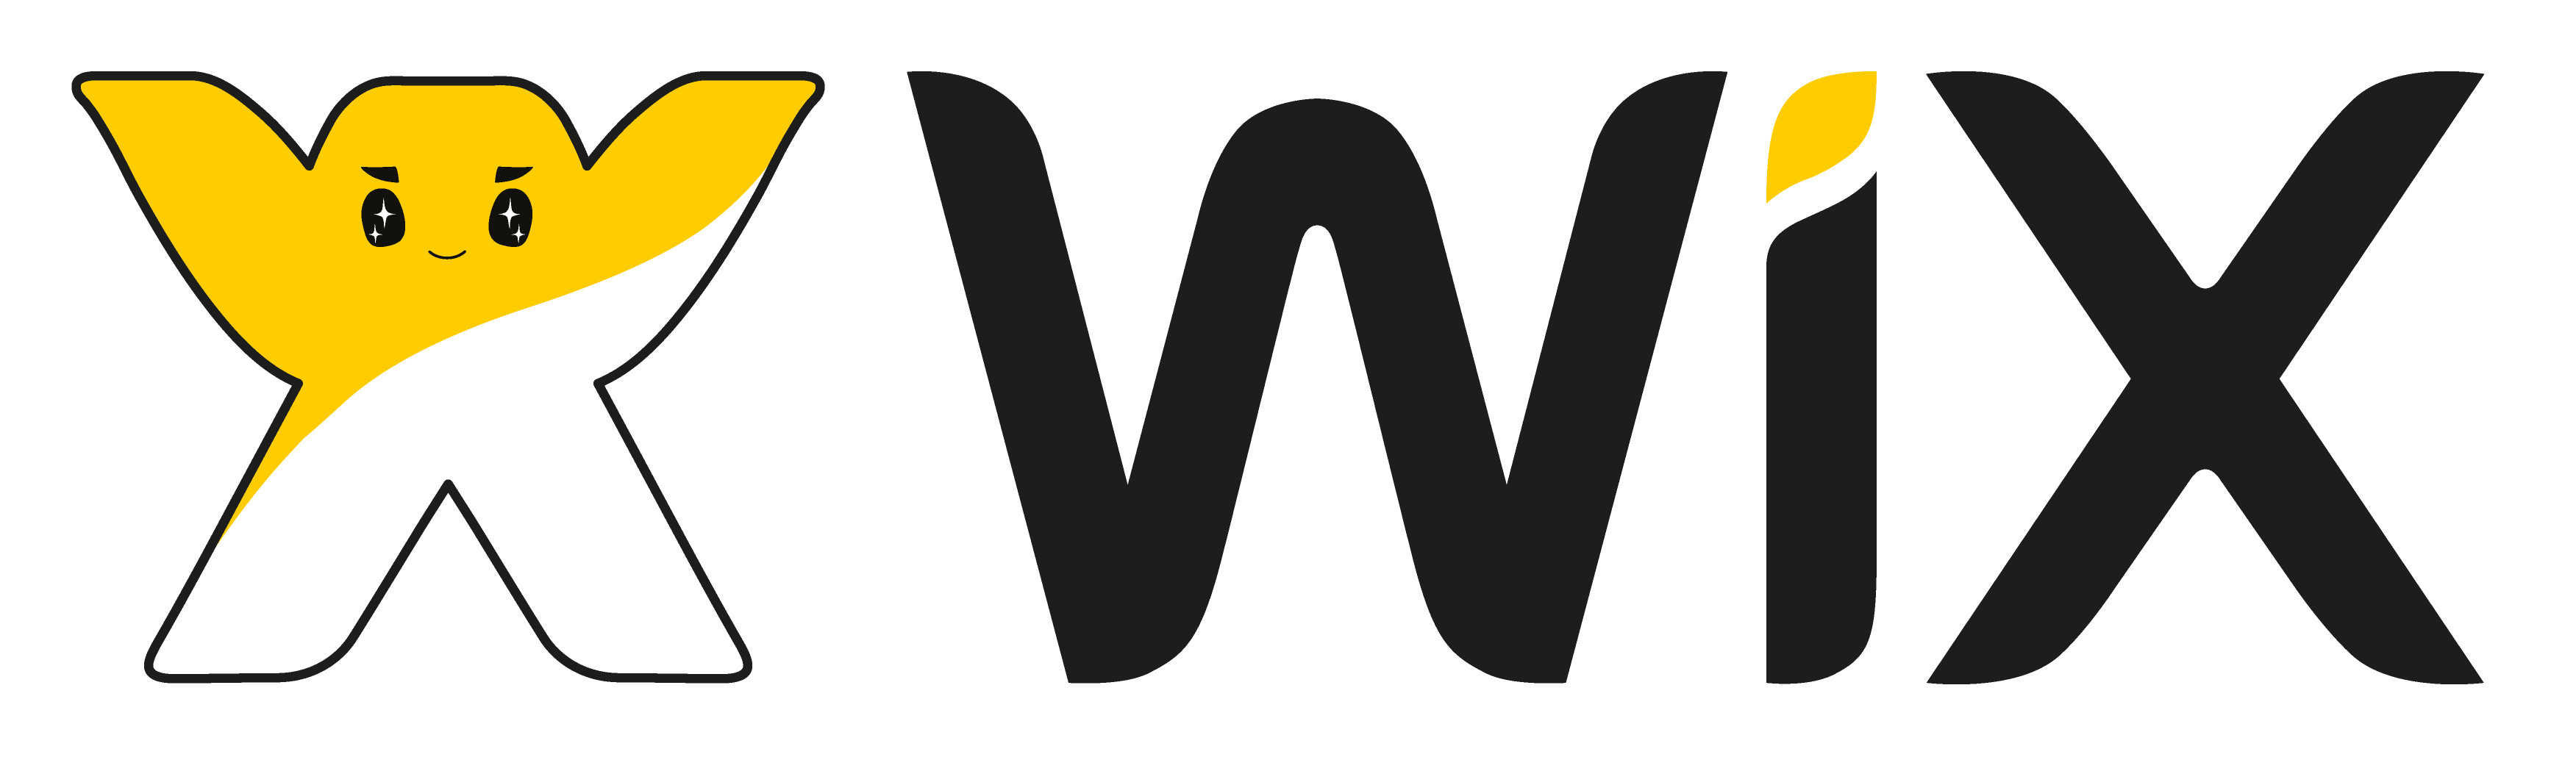 Wix.com Reports First Quarter 2015 Results